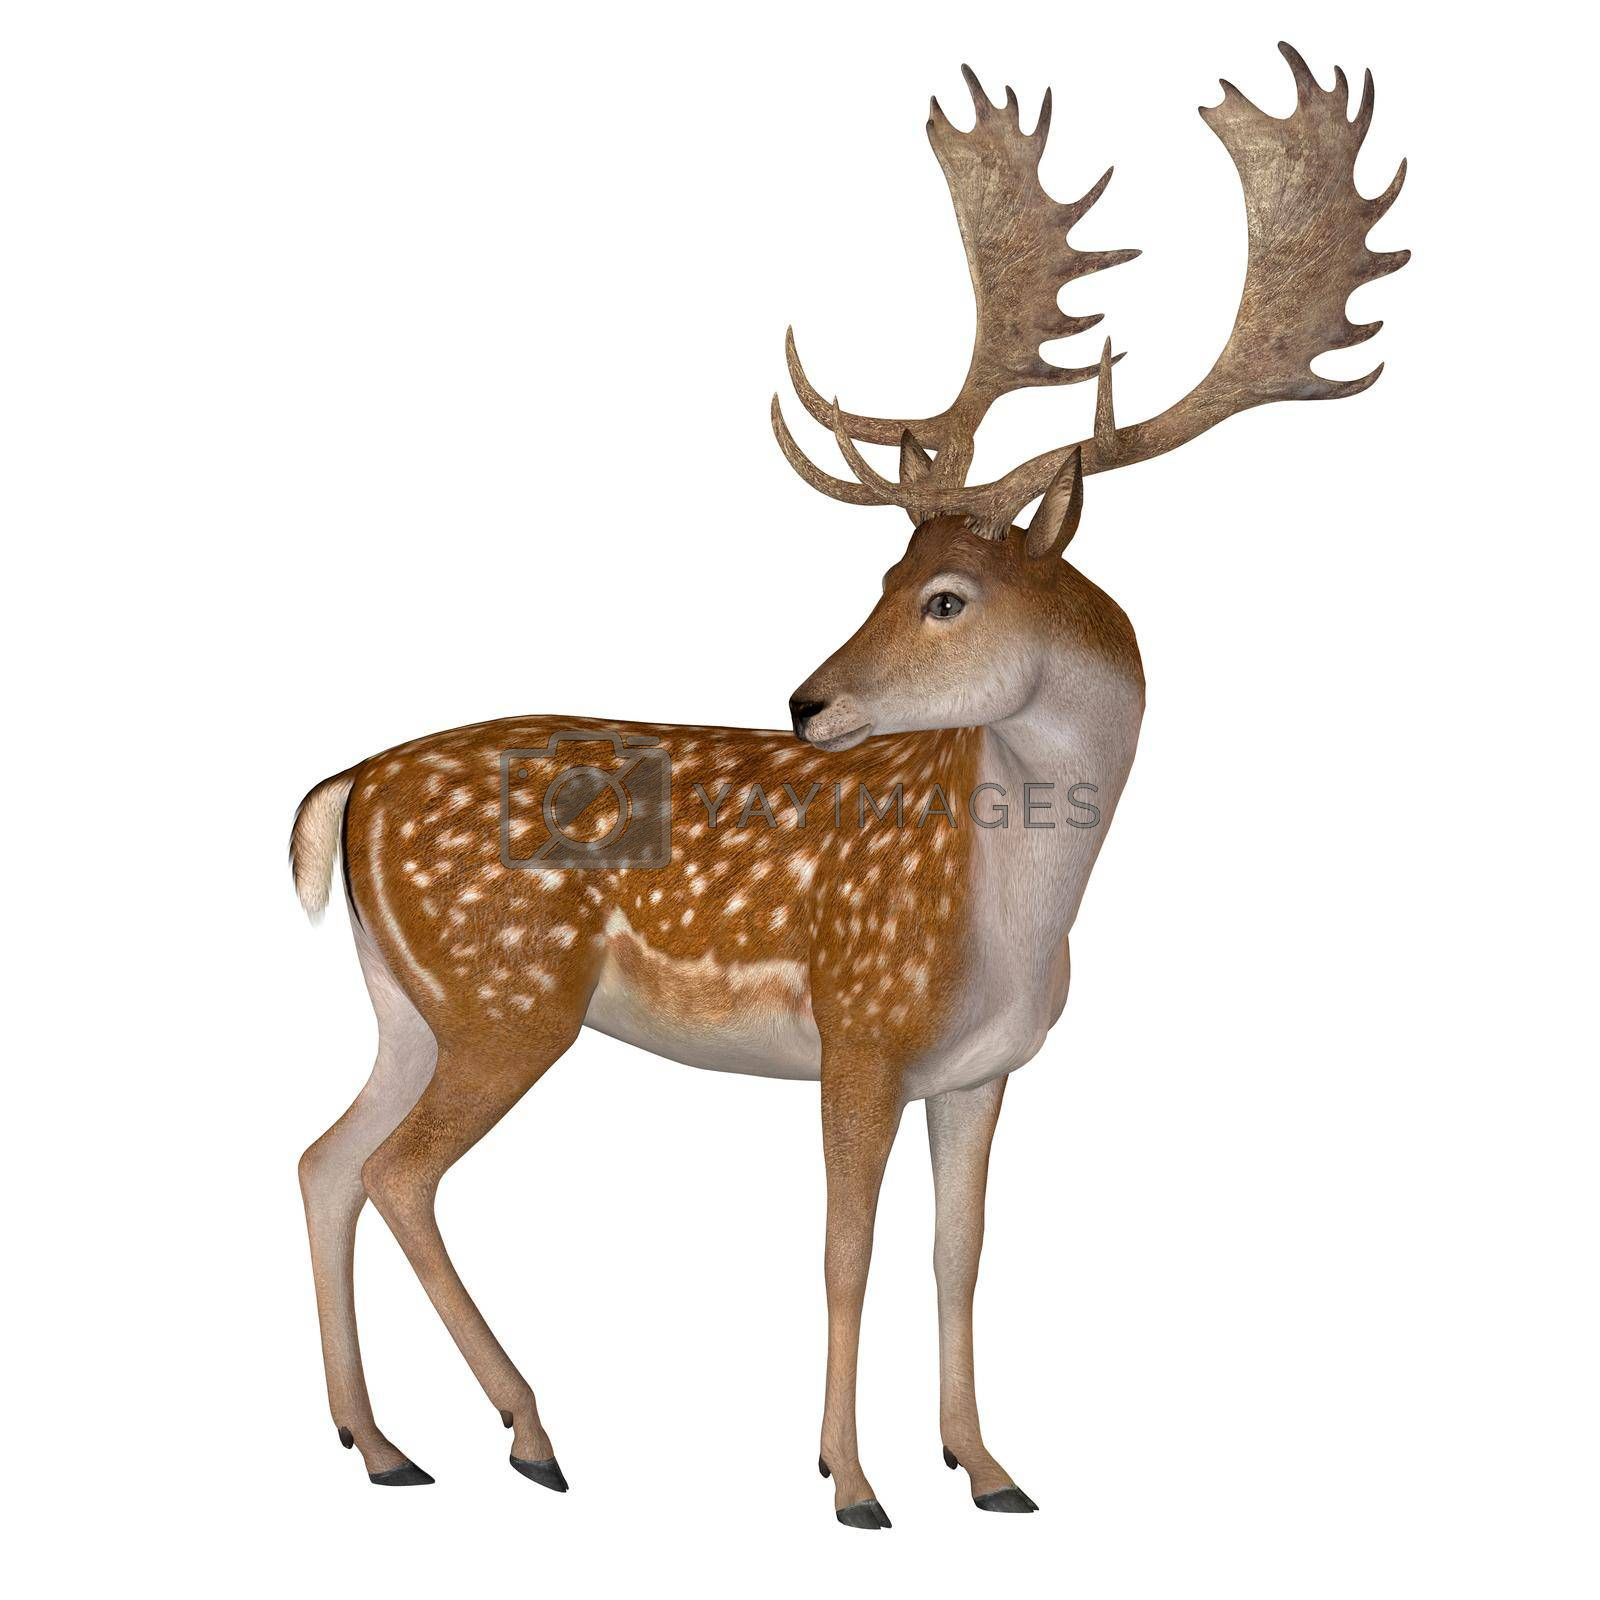 The Fallow deer can be traced back to Pleistocene Period and the species now lives in Europe.